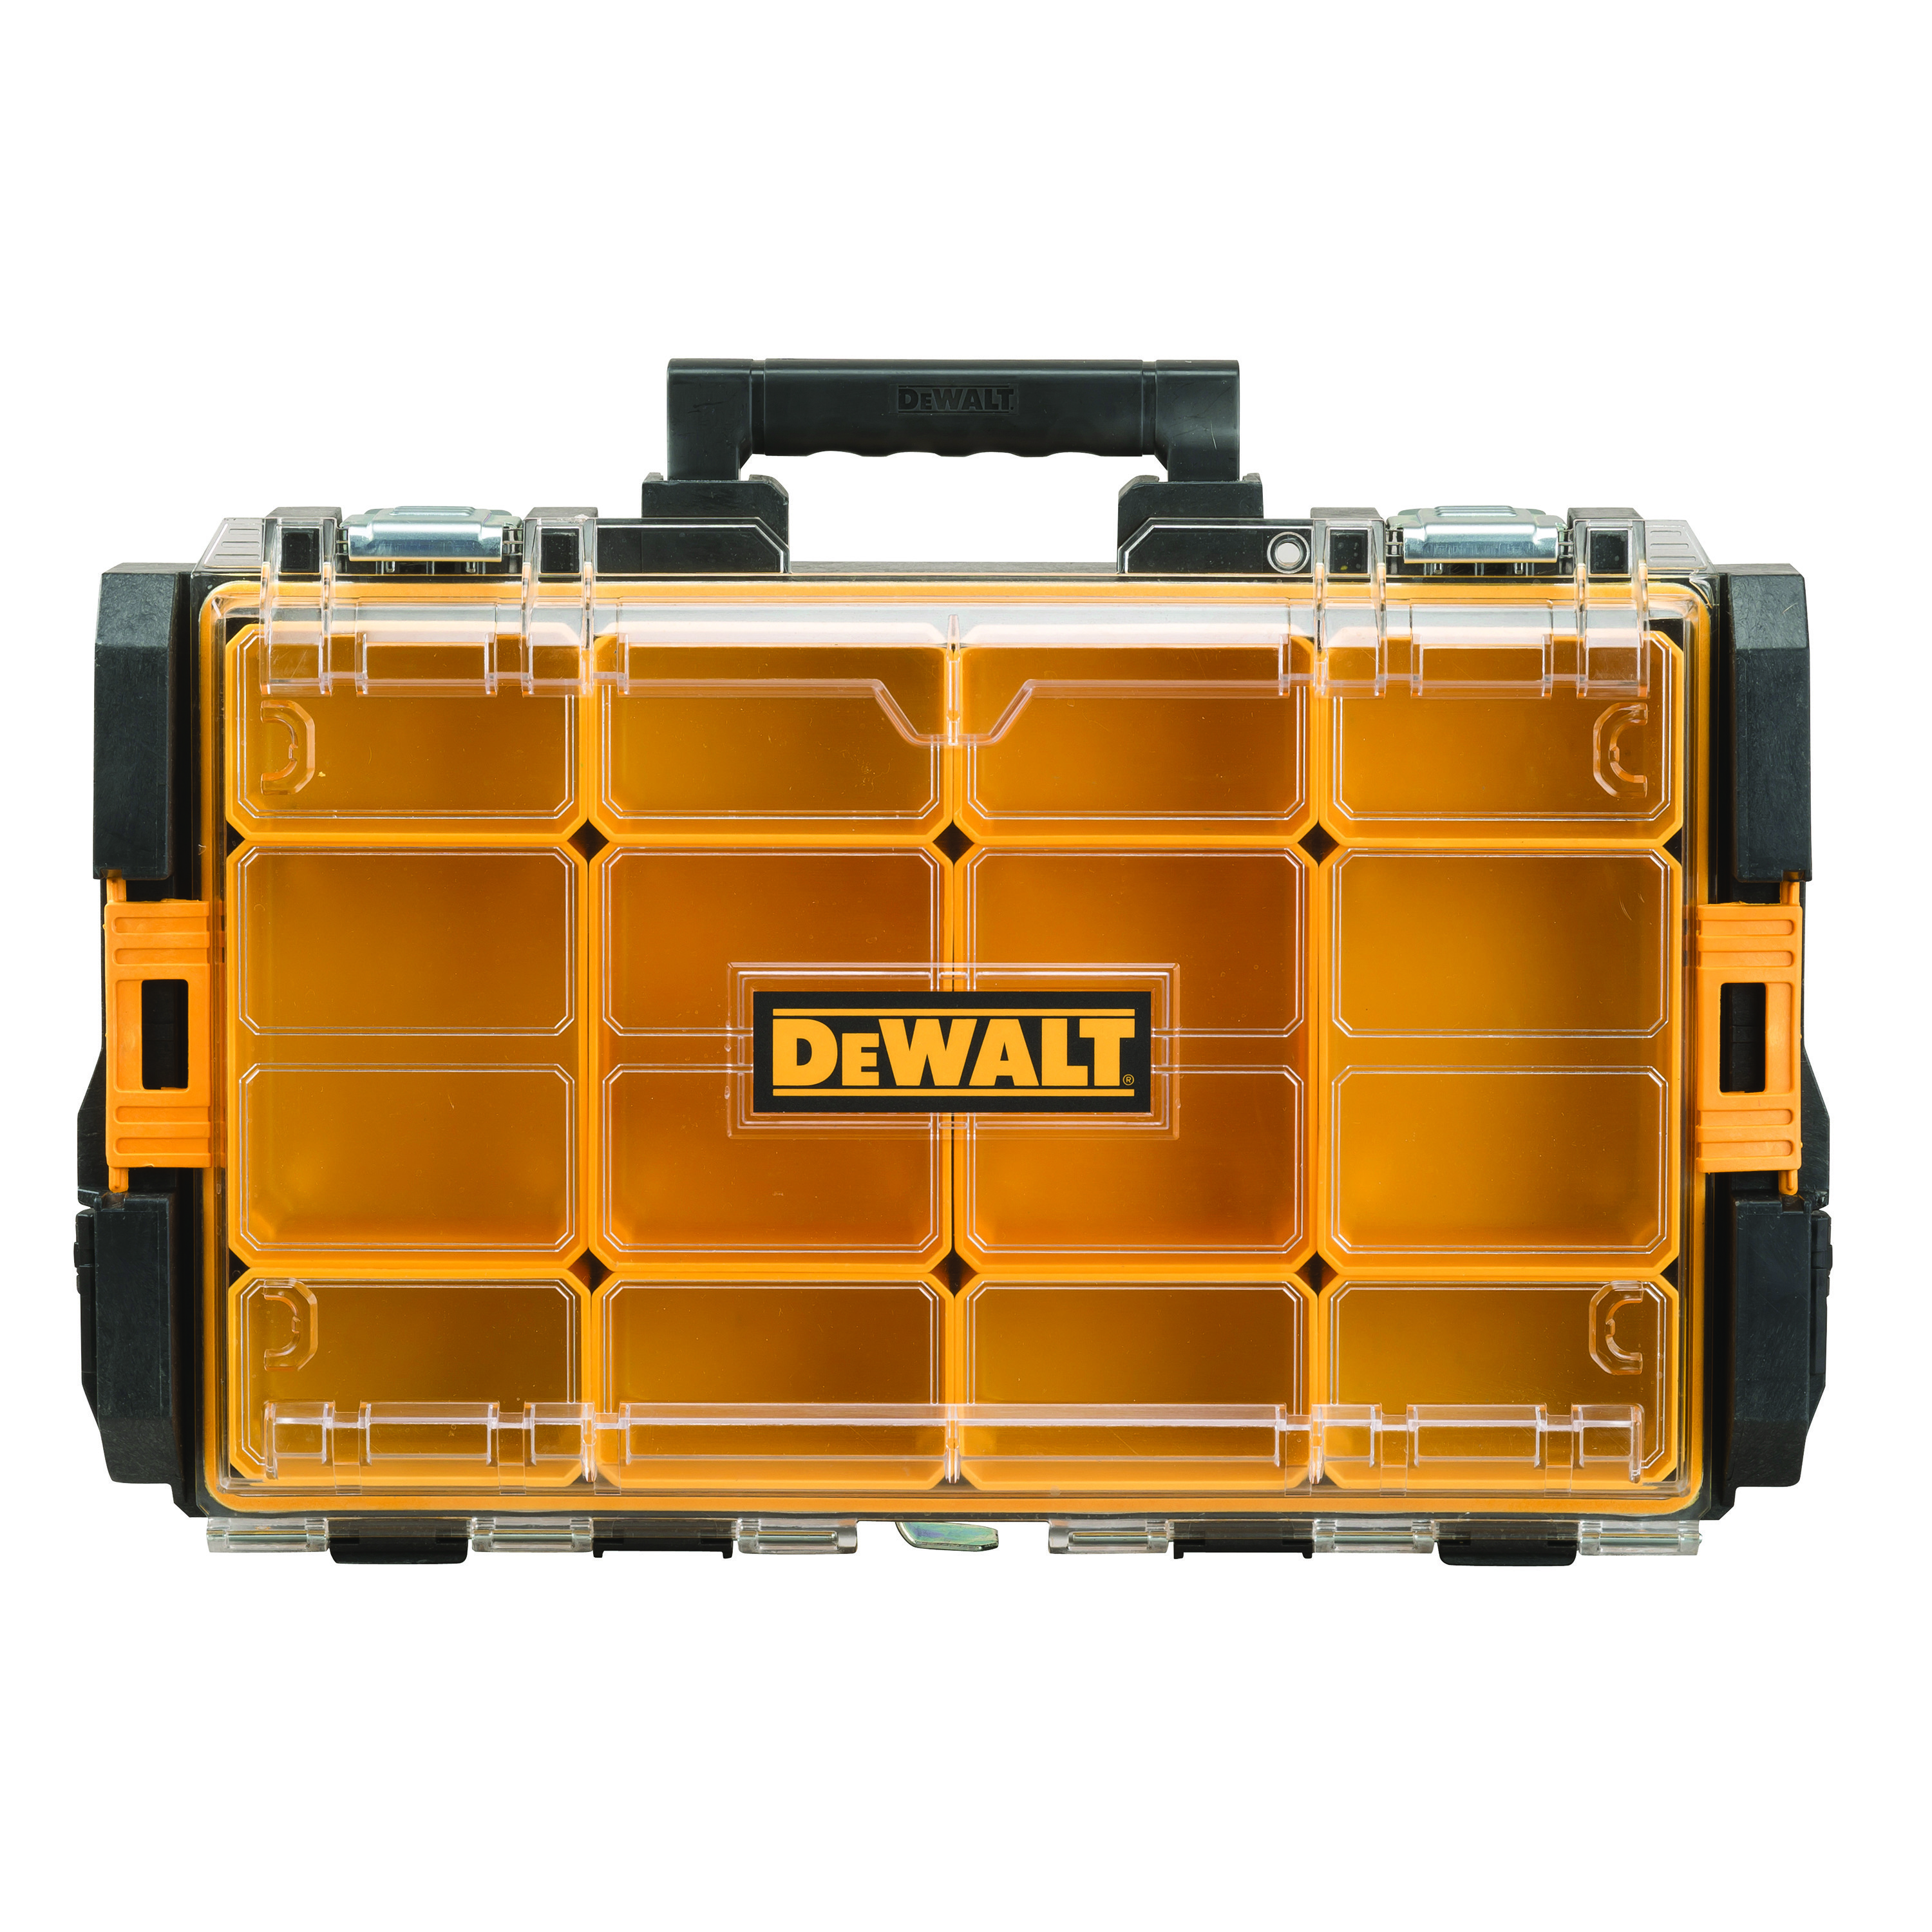 DeWALT® ToughSystem® DWST08202 12-Compartment Tool Organizer, 4-1/2 in H x 13-1/8 in W x 13-5/32 in D, Polycarbonate, Black/Yellow